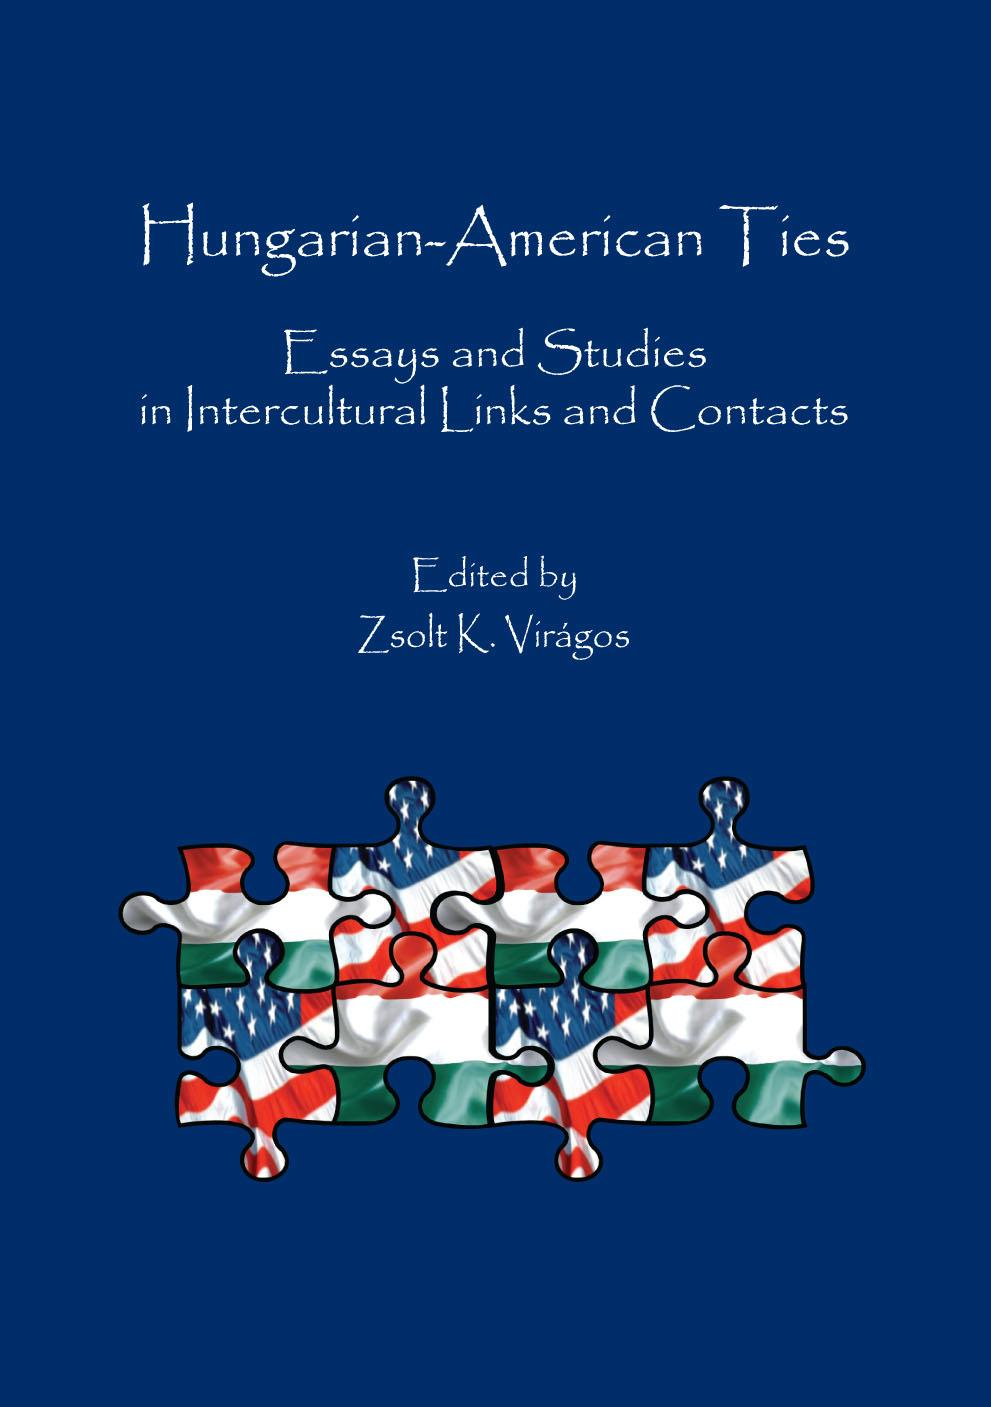 VIRÁGOS K. ZSOLT - HUNGARIAN-AMERICAN TIES - ESSAYS AND STUDIES IN INTERCULTURAL LINKS AND CONTACTS